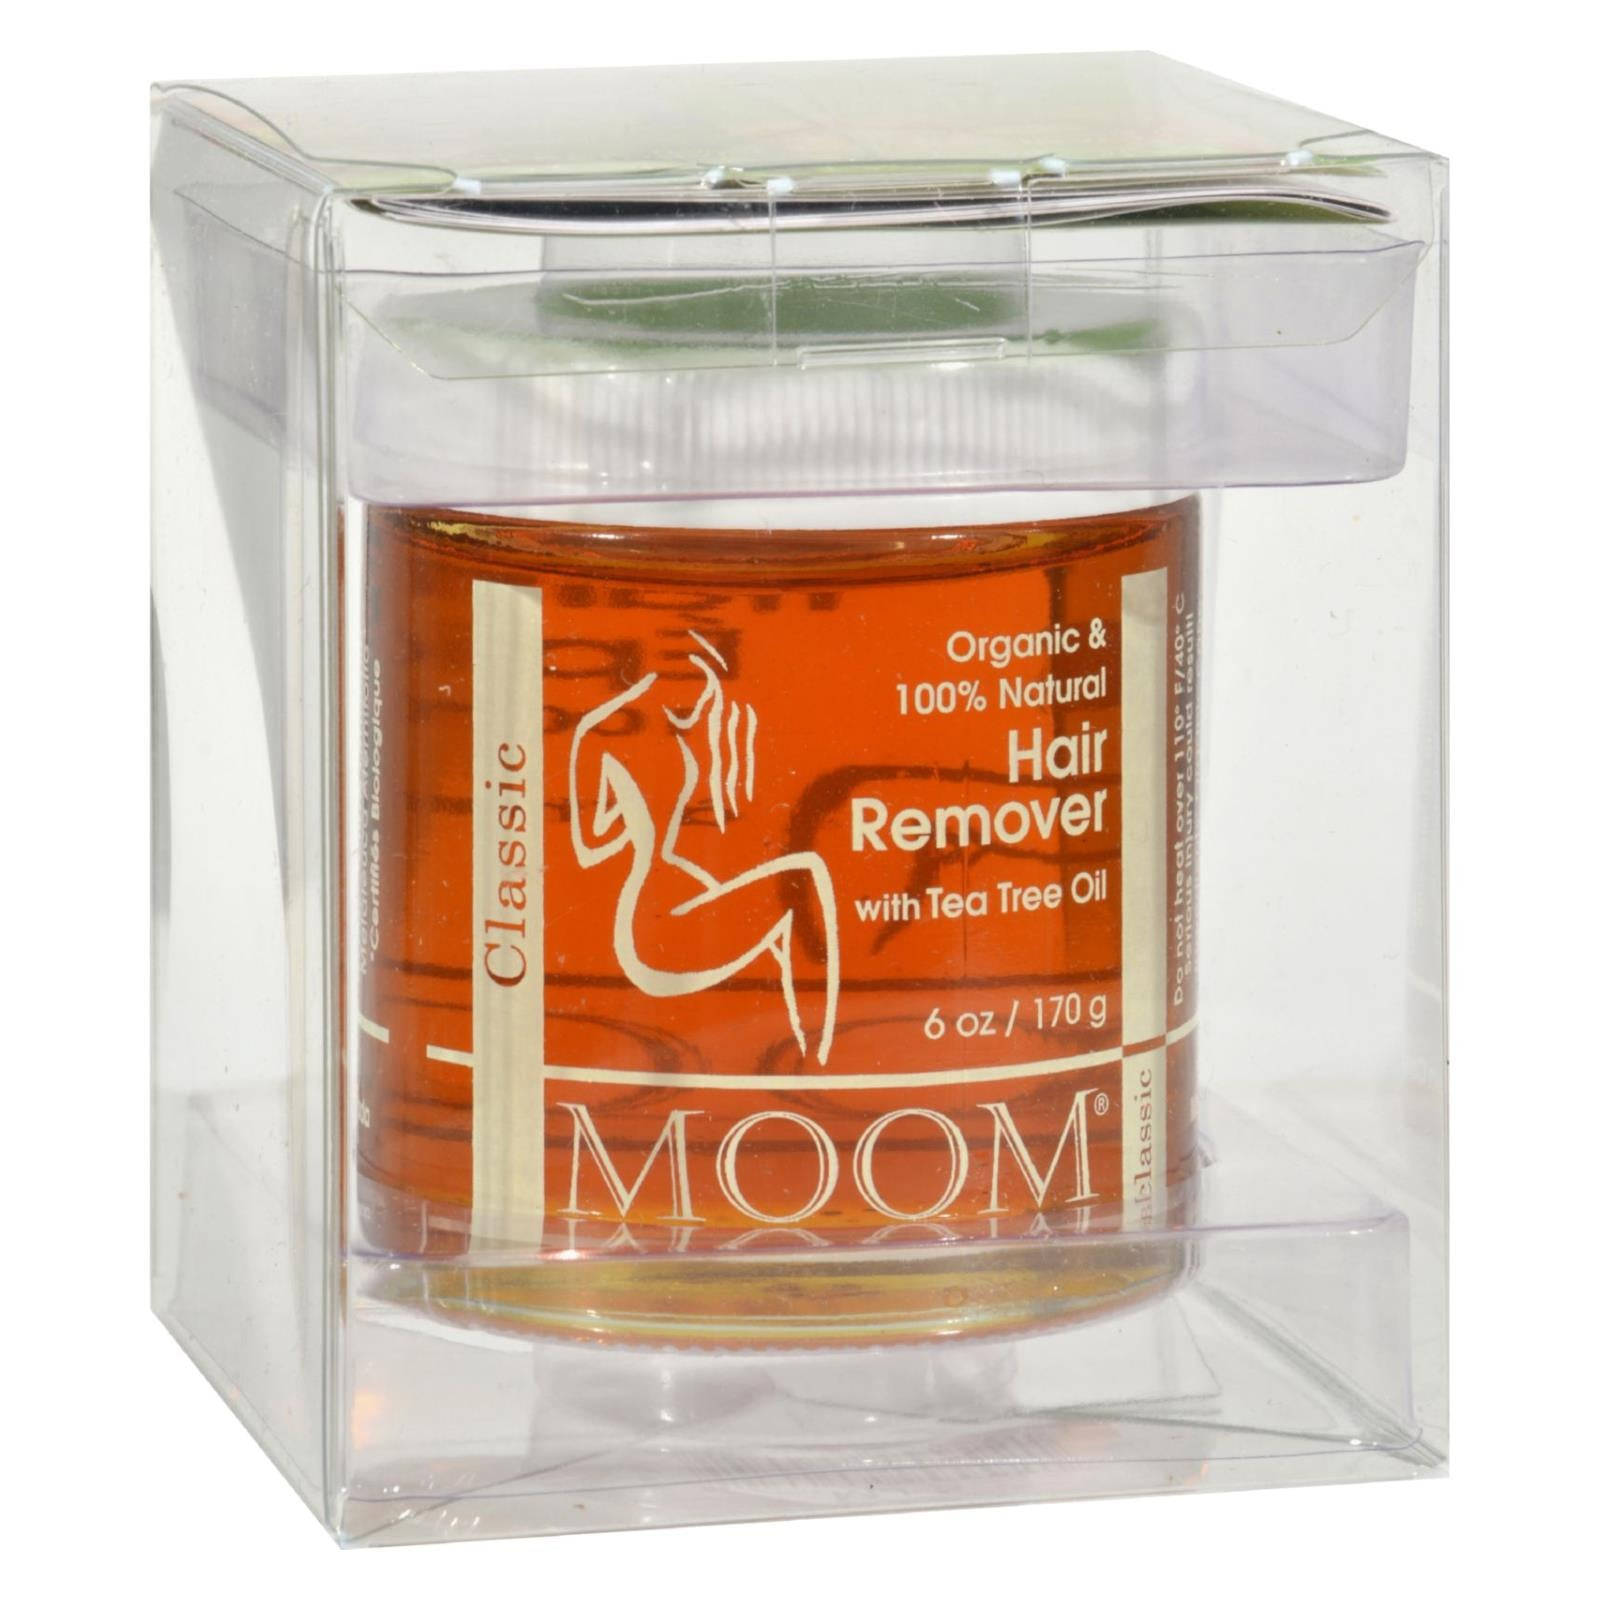 Moom Organic Hair Remover With Tea Tree Oil 6 Fl Oz HG0166876